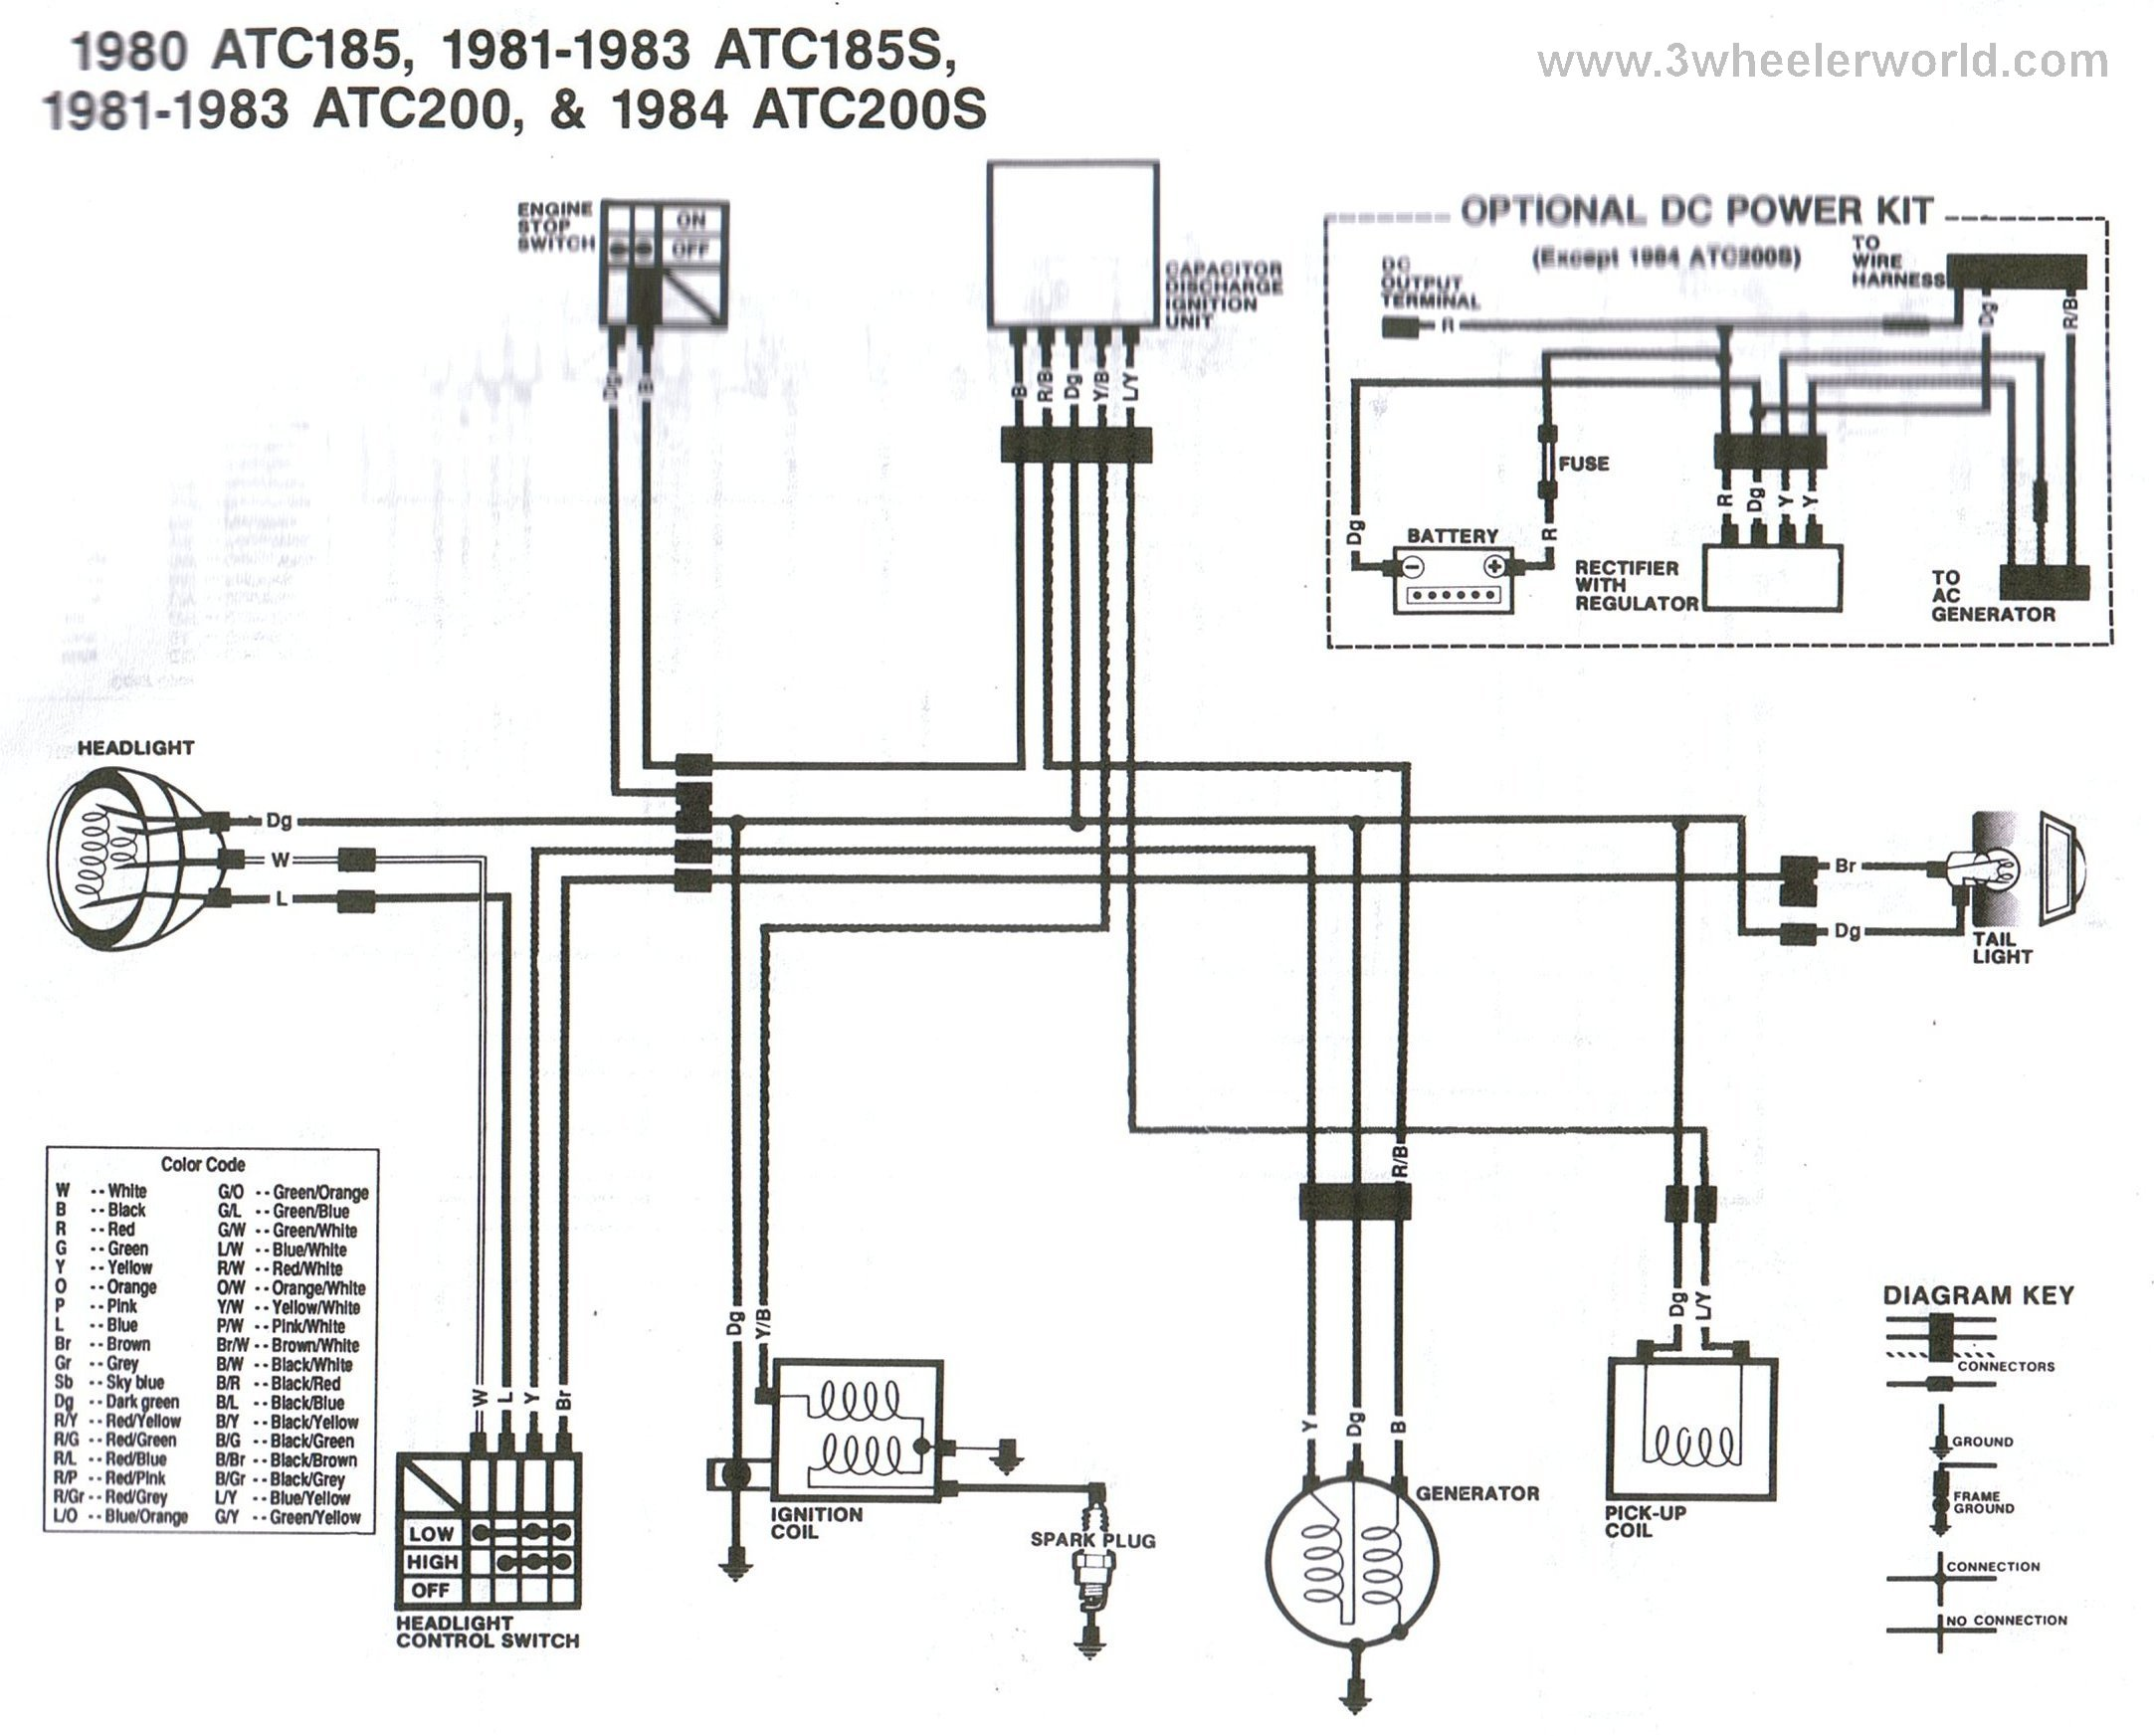 [DIAGRAM_4FR]  15DCE Honda 200x Wiring Diagram | Digital Resources | 200x Wiring Diagram |  | Digital Resources